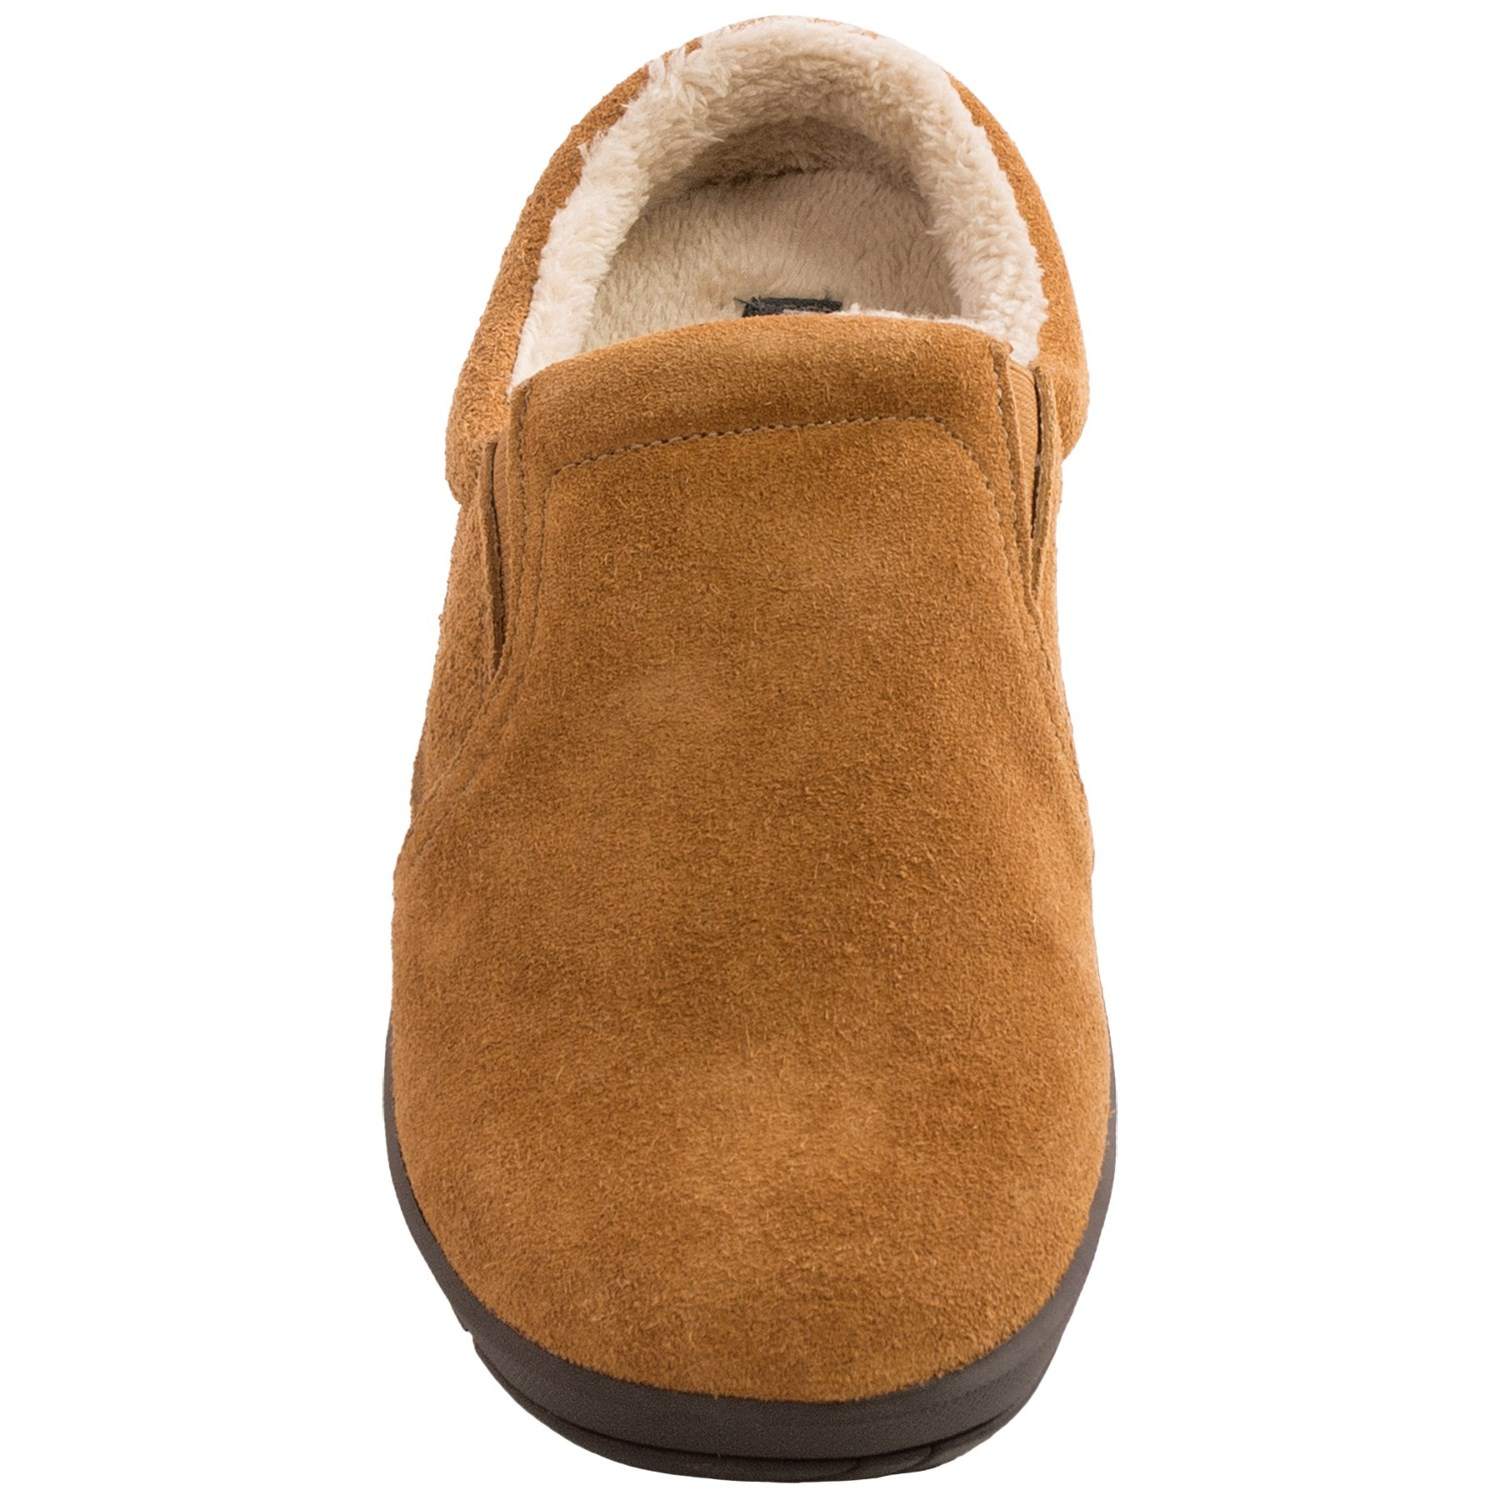 Hush Puppies Lombardy Suede Slippers For Men Save 75